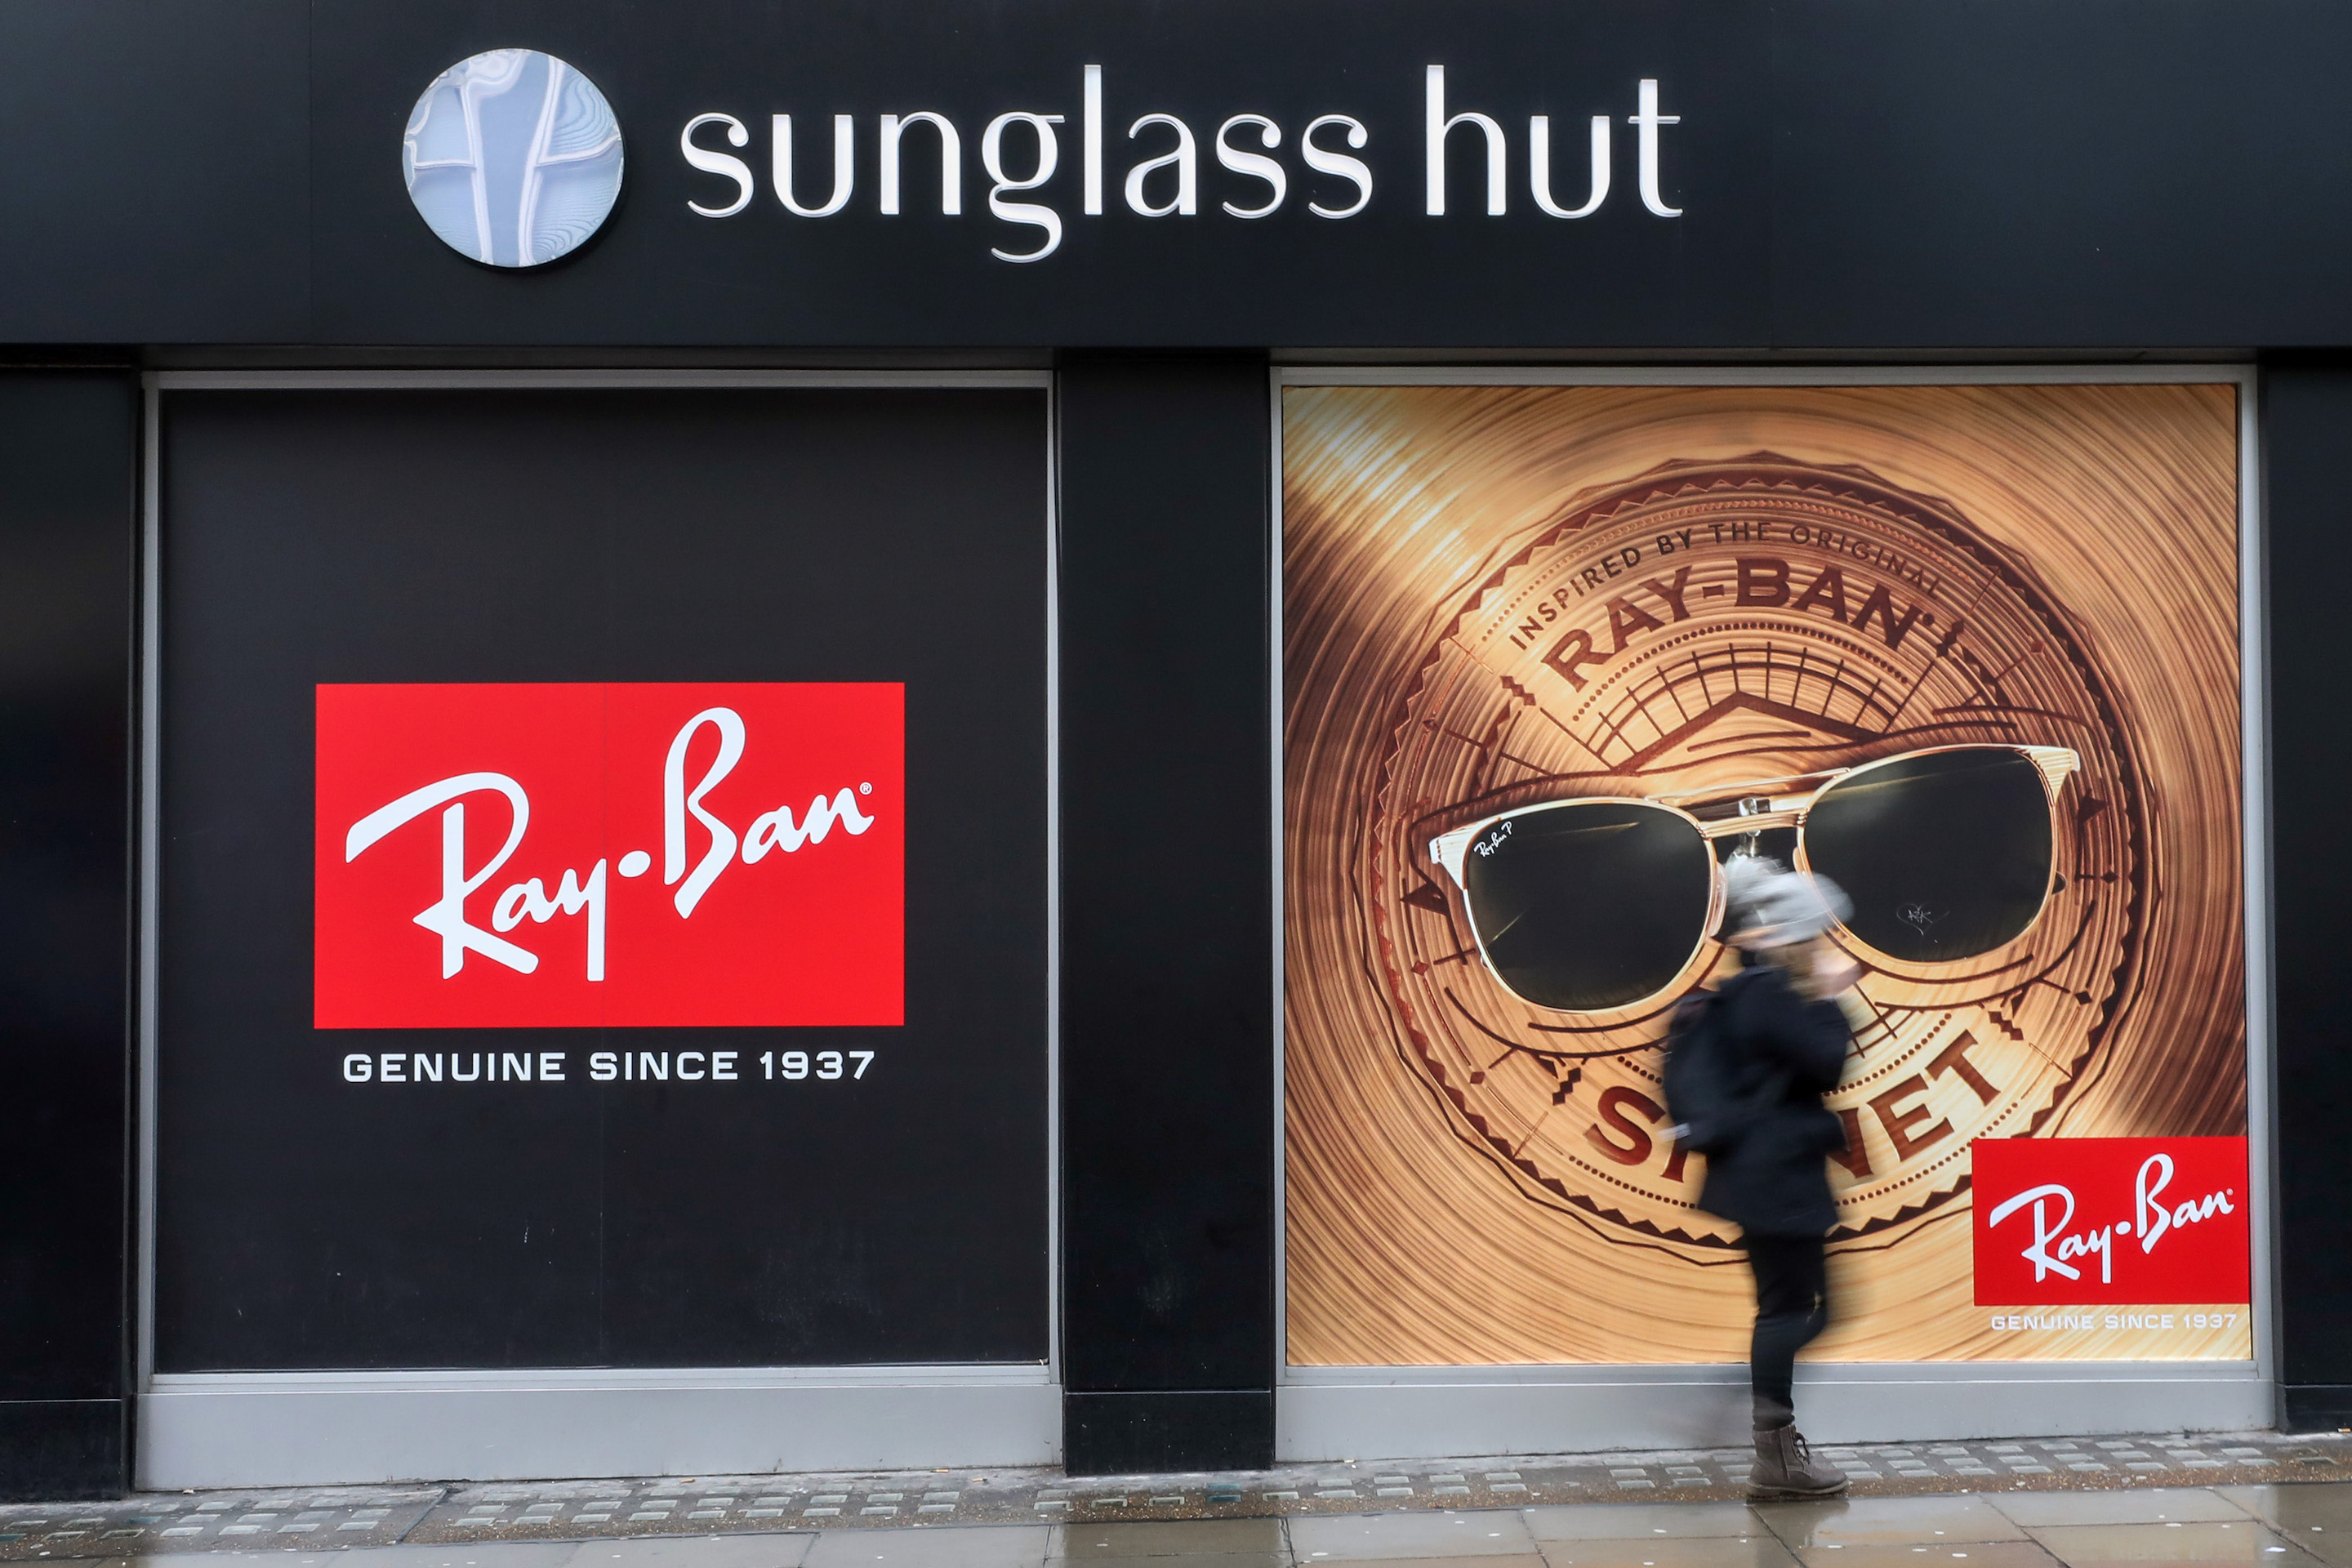 One of EssilorLuxottica's best known brands is Ray-Ban. The French-Italian company's eyewear empire also includes an array of designer brands, as well as U.S. shopping mall vision stores such as For Eyes, Target Optical, and Sears Optical.